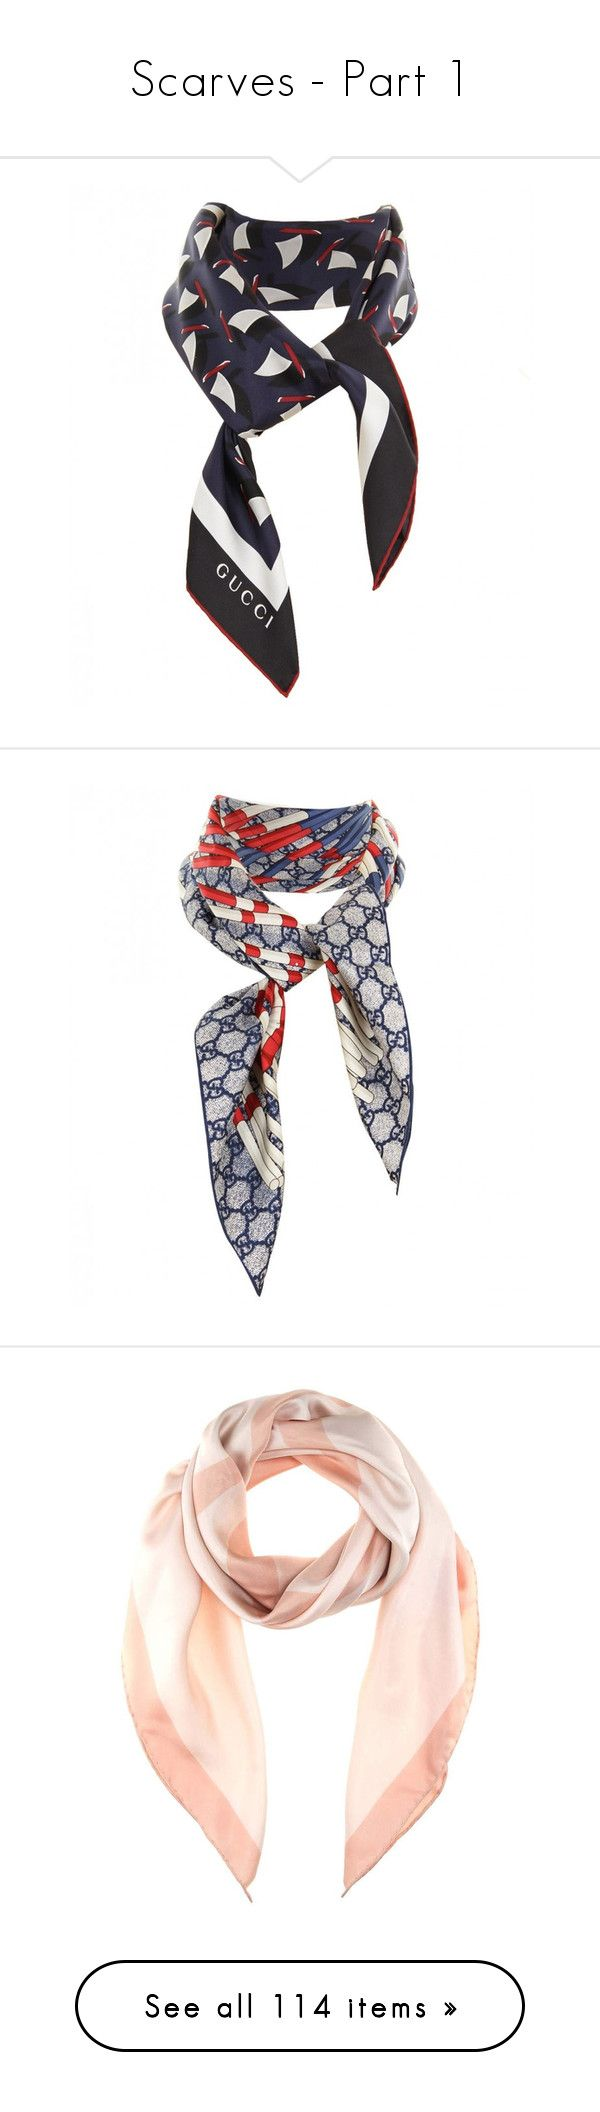 """Scarves - Part 1"" by l33l ❤ liked on Polyvore featuring accessories, scarves, white scarves, gucci, patterned scarves, navy blue scarves, navy shawl, gucci scarves, print scarves and silk twill scarves"